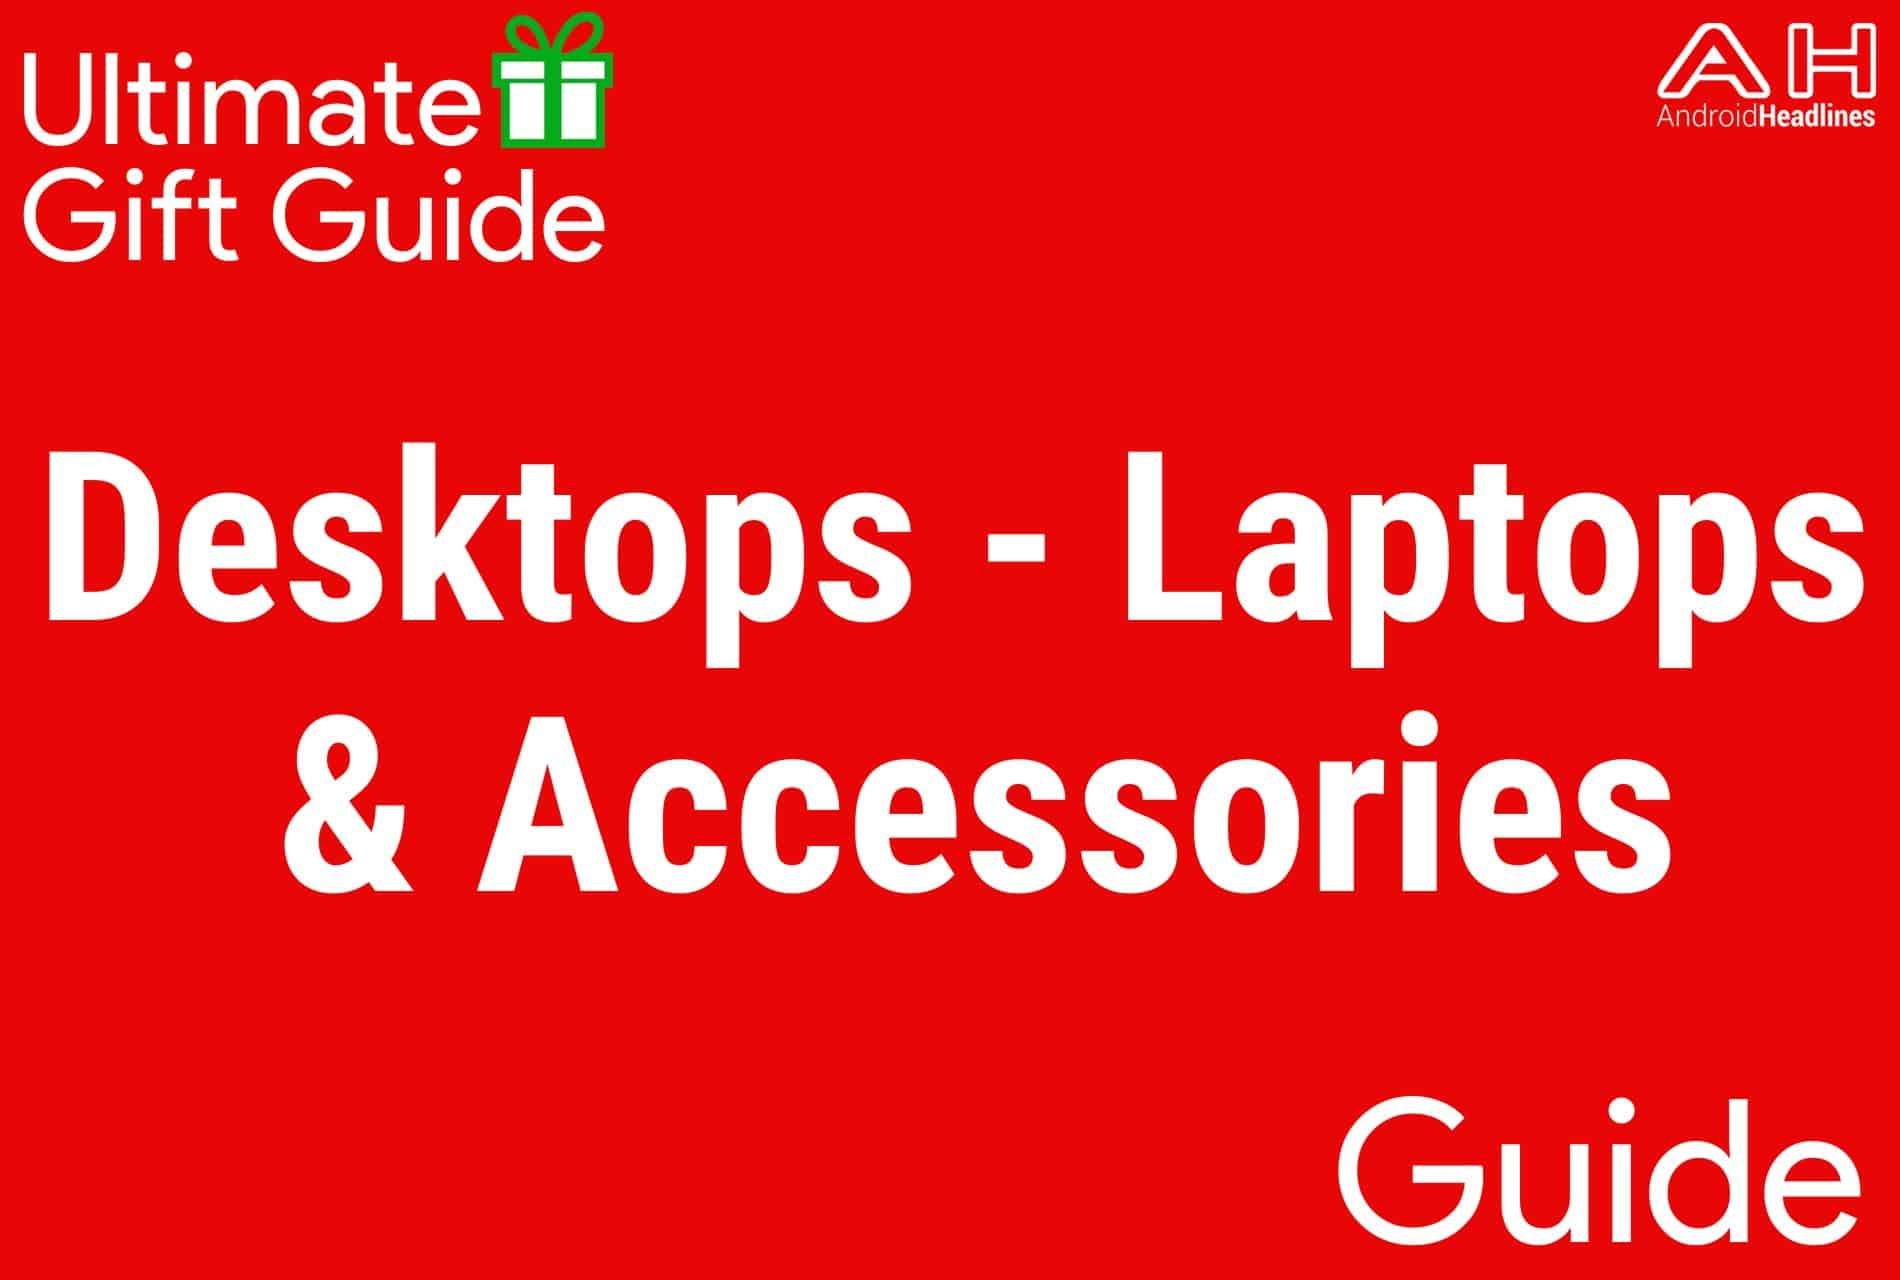 Desktops, Laptops, Acessories - Holiday Gift Guide 2015-2016